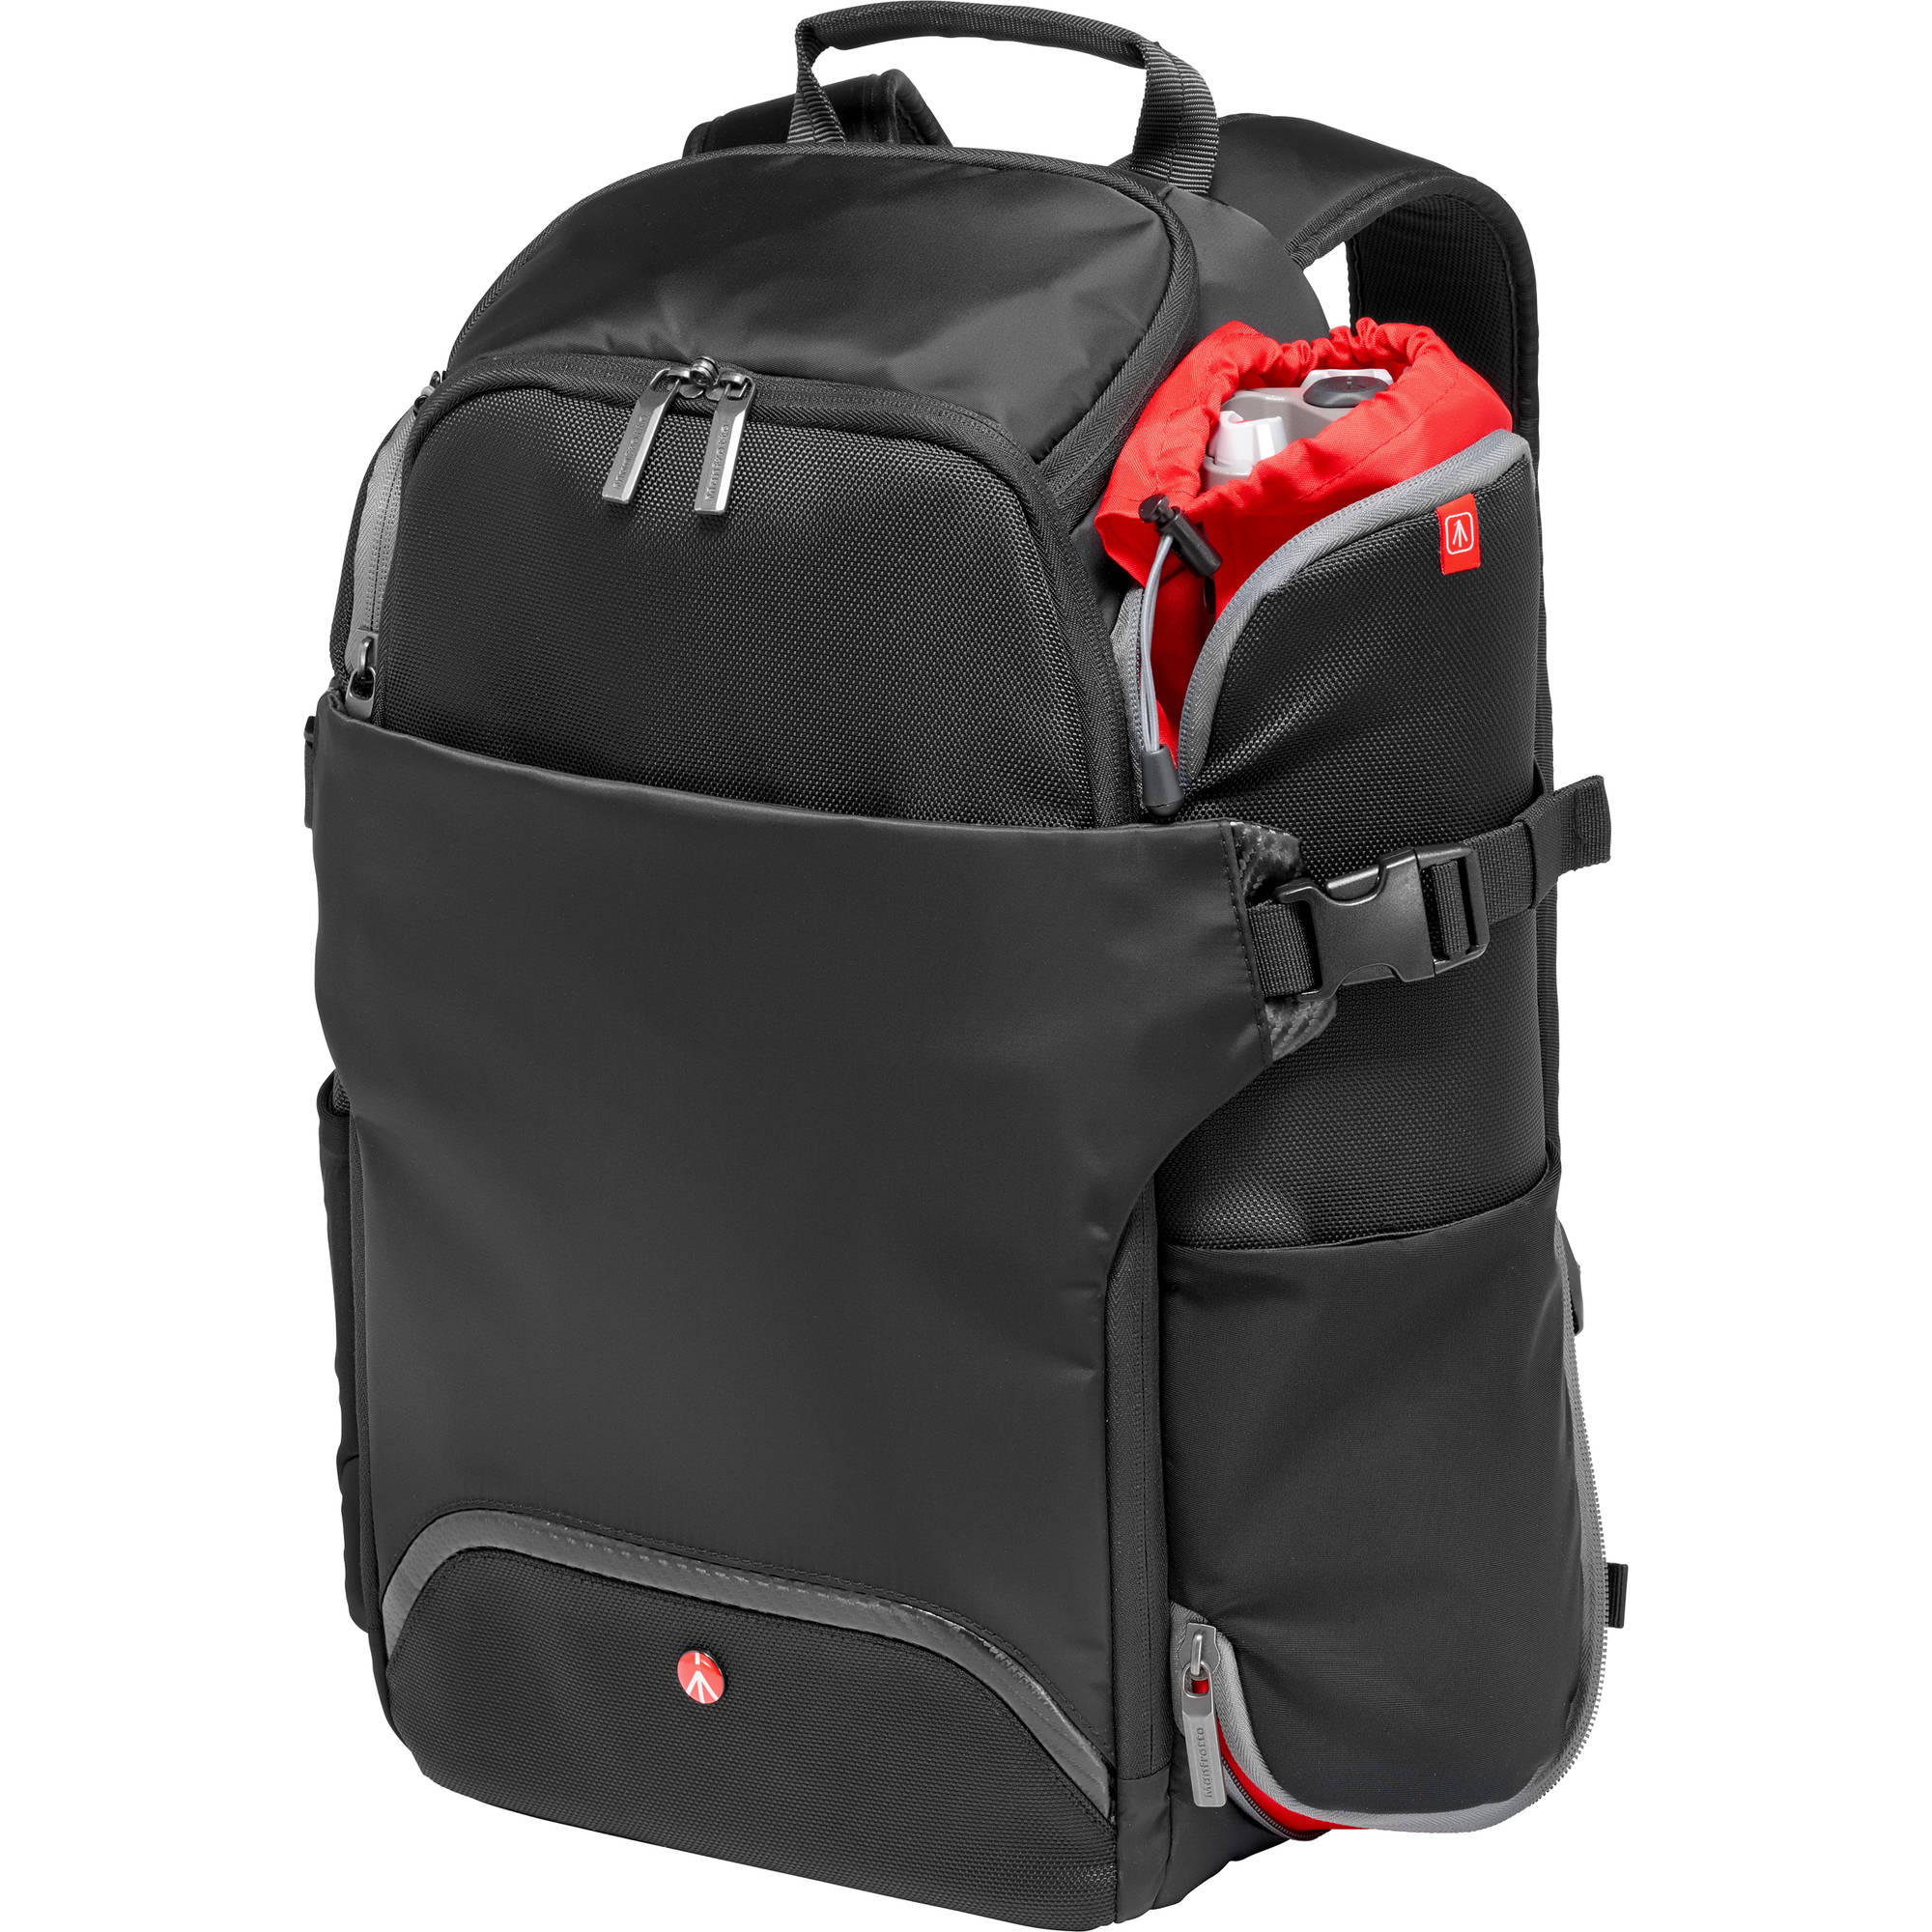 Manfrotto Rear Access Advanced Camera and Laptop Backpack (Black)